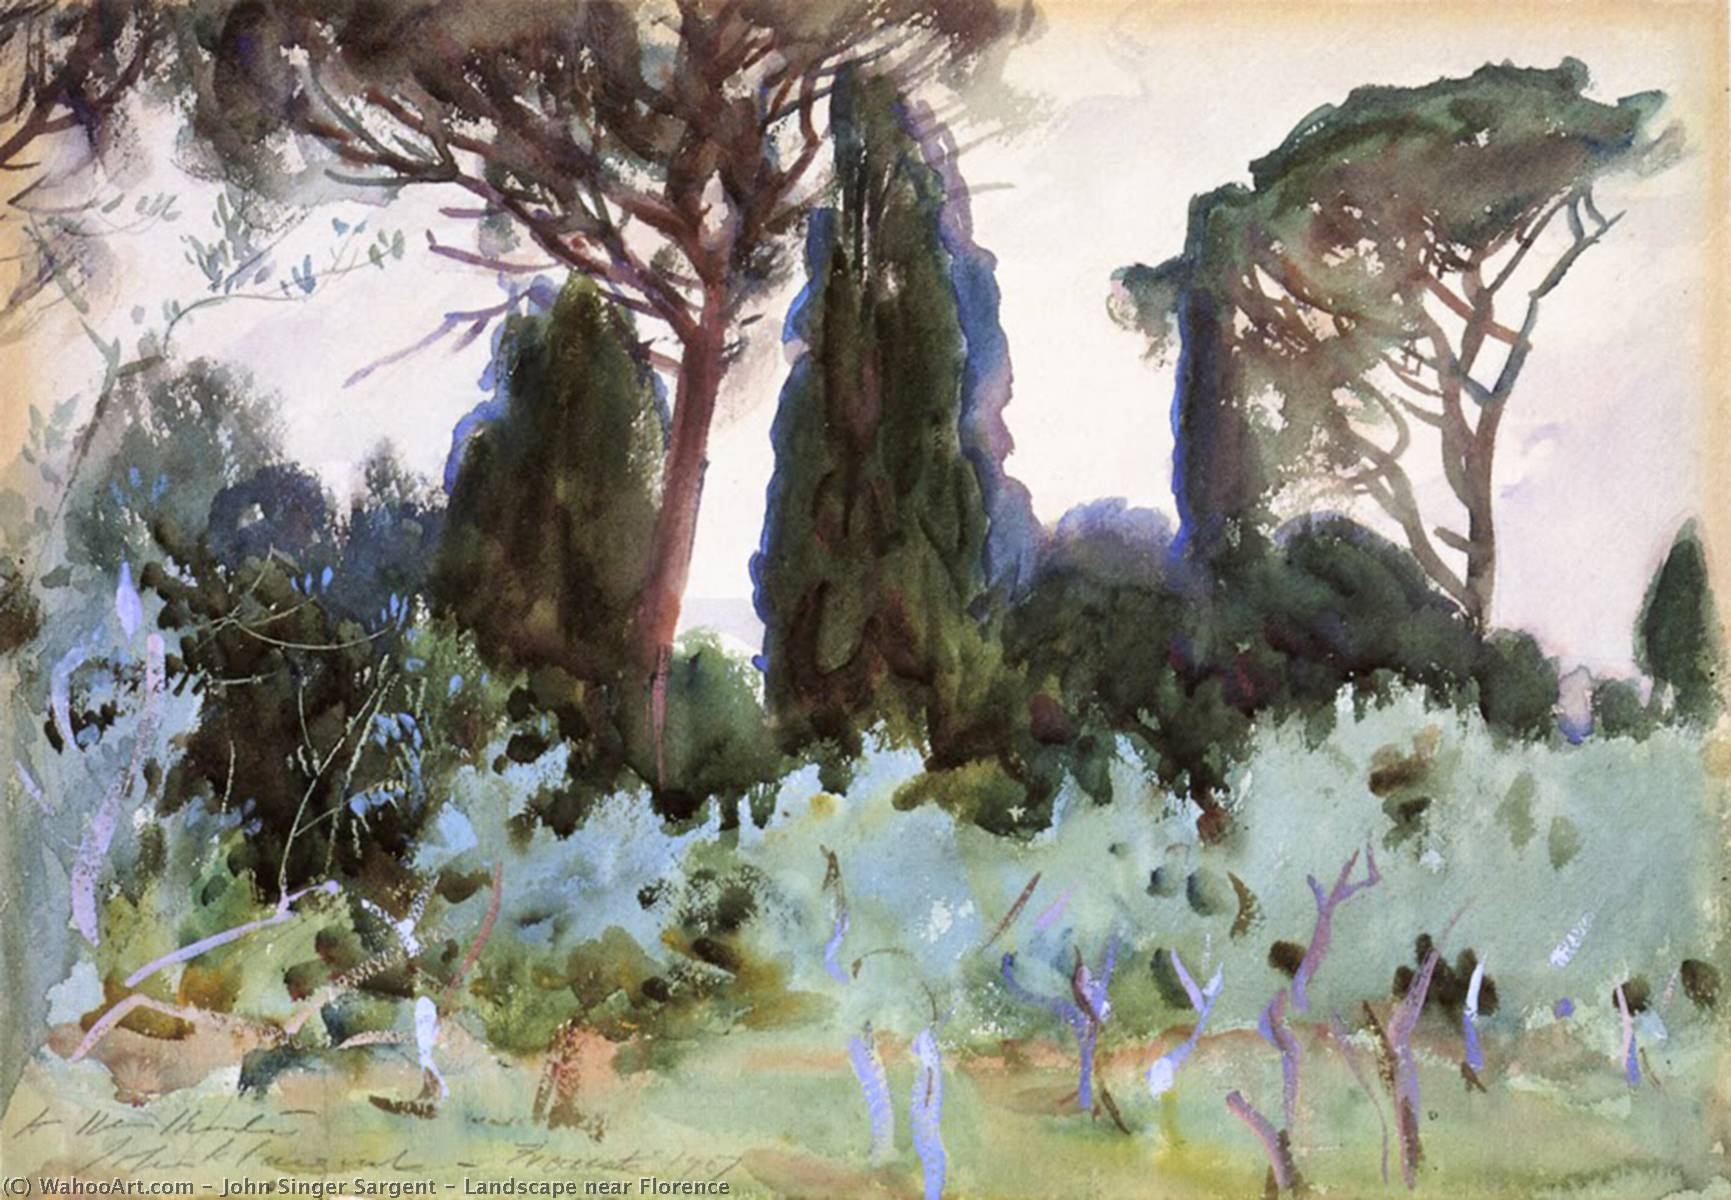 Landscape near Florence, Watercolour by John Singer Sargent (1856-1925, Italy)